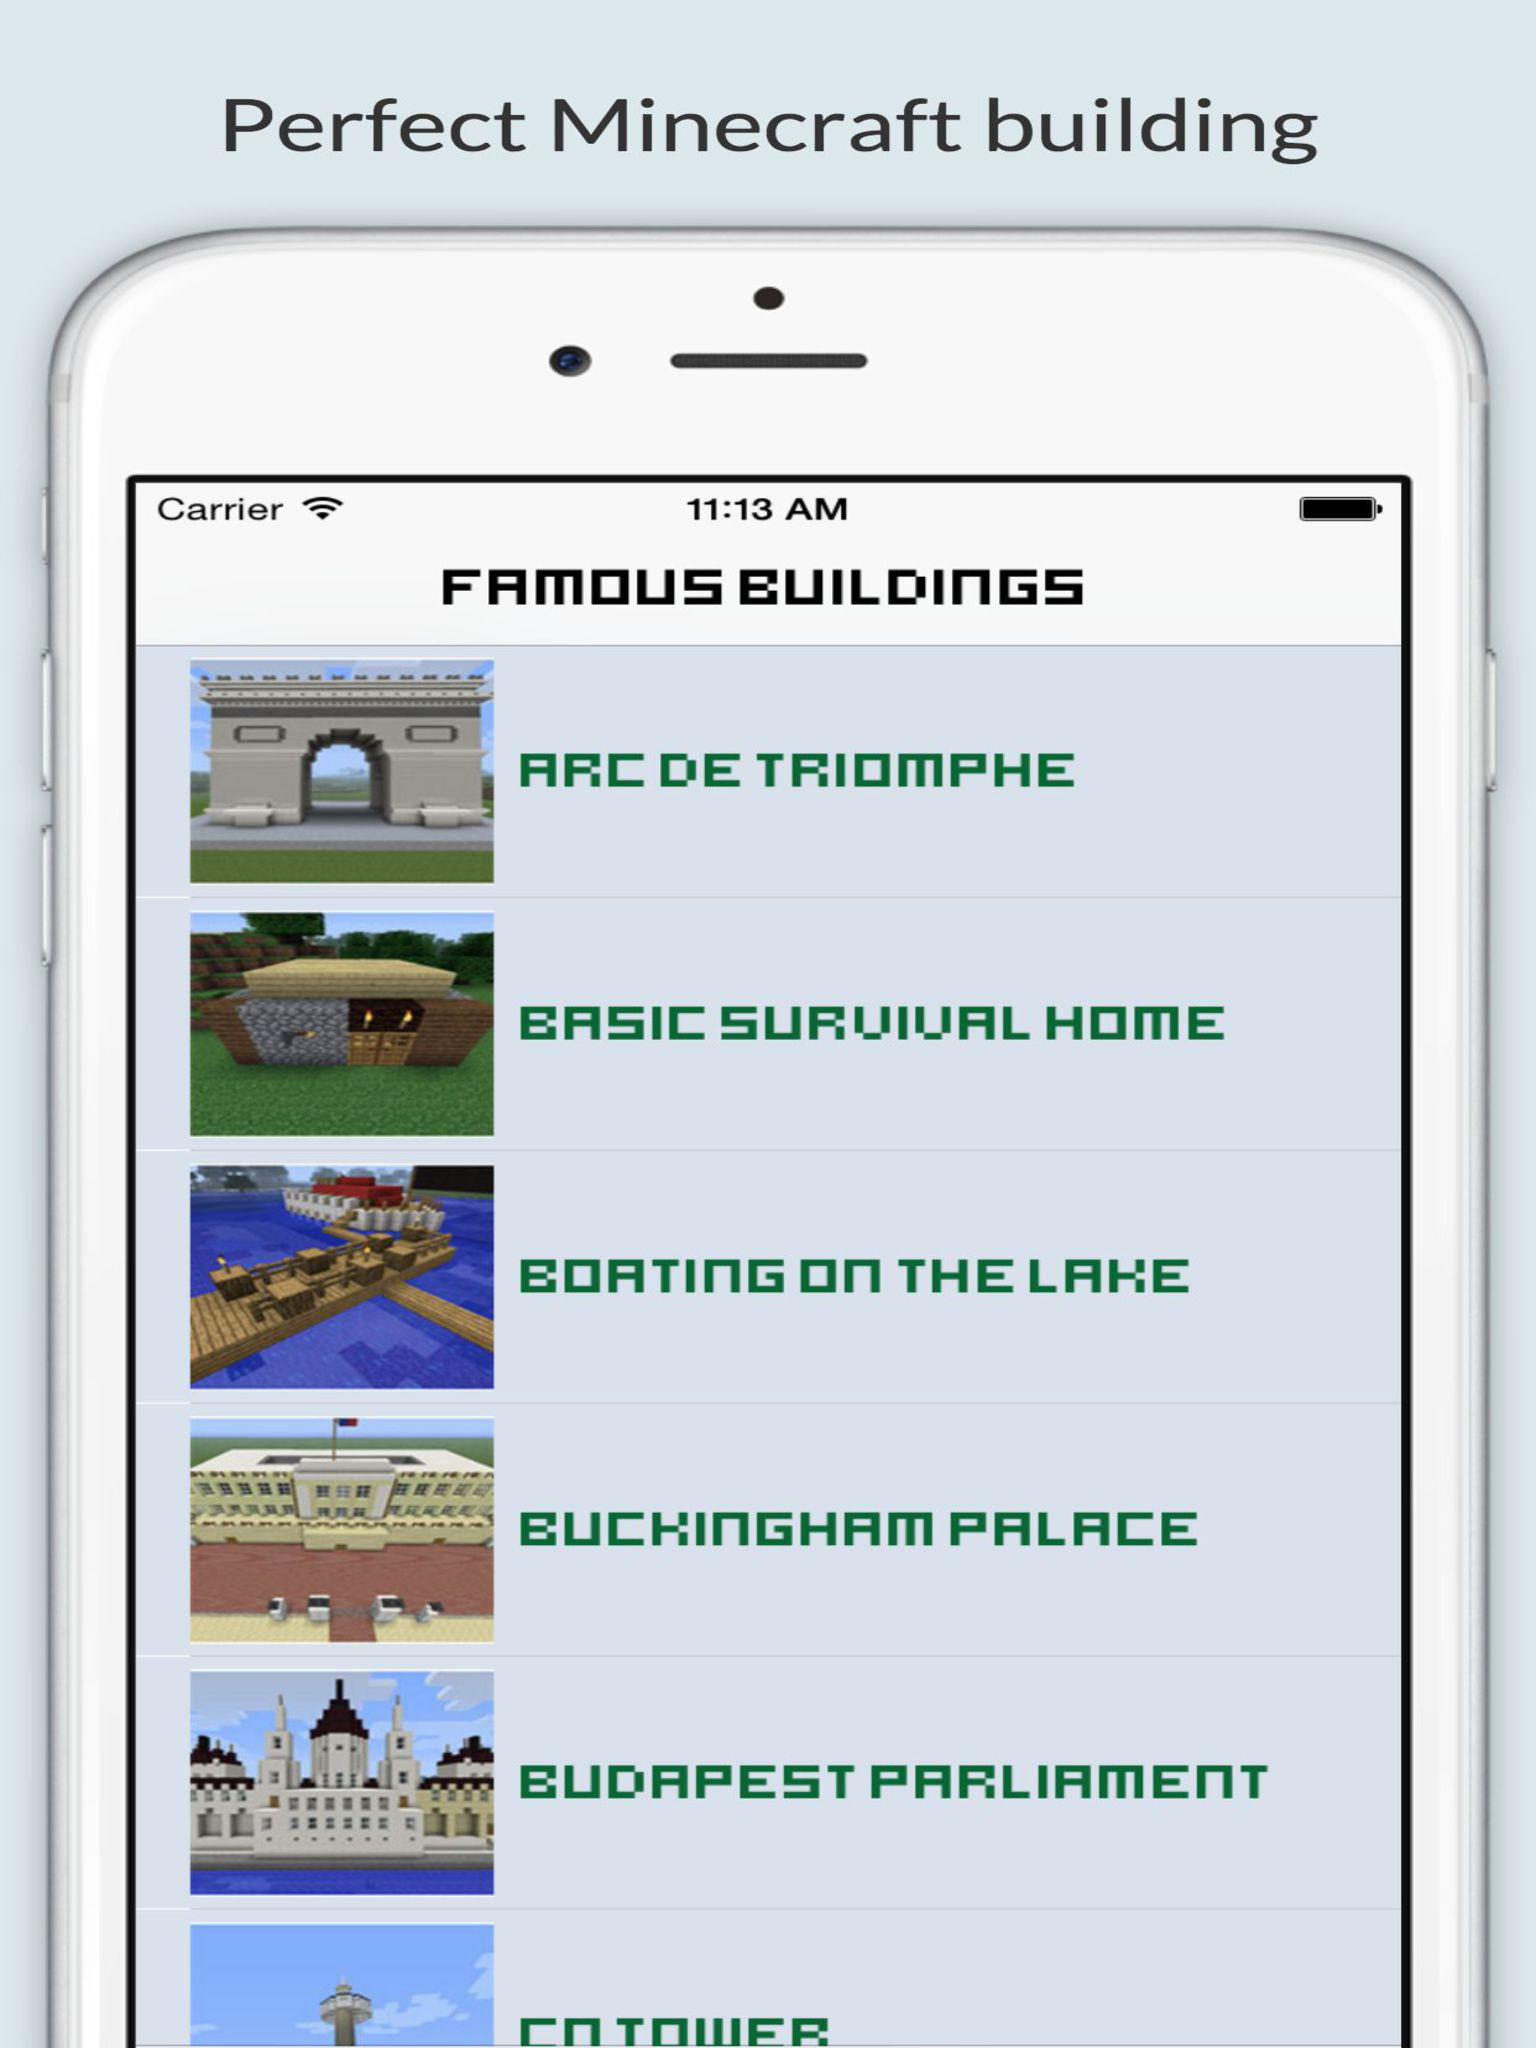 Perfect minecraft building house tips ideas guide for app description malvernweather Image collections